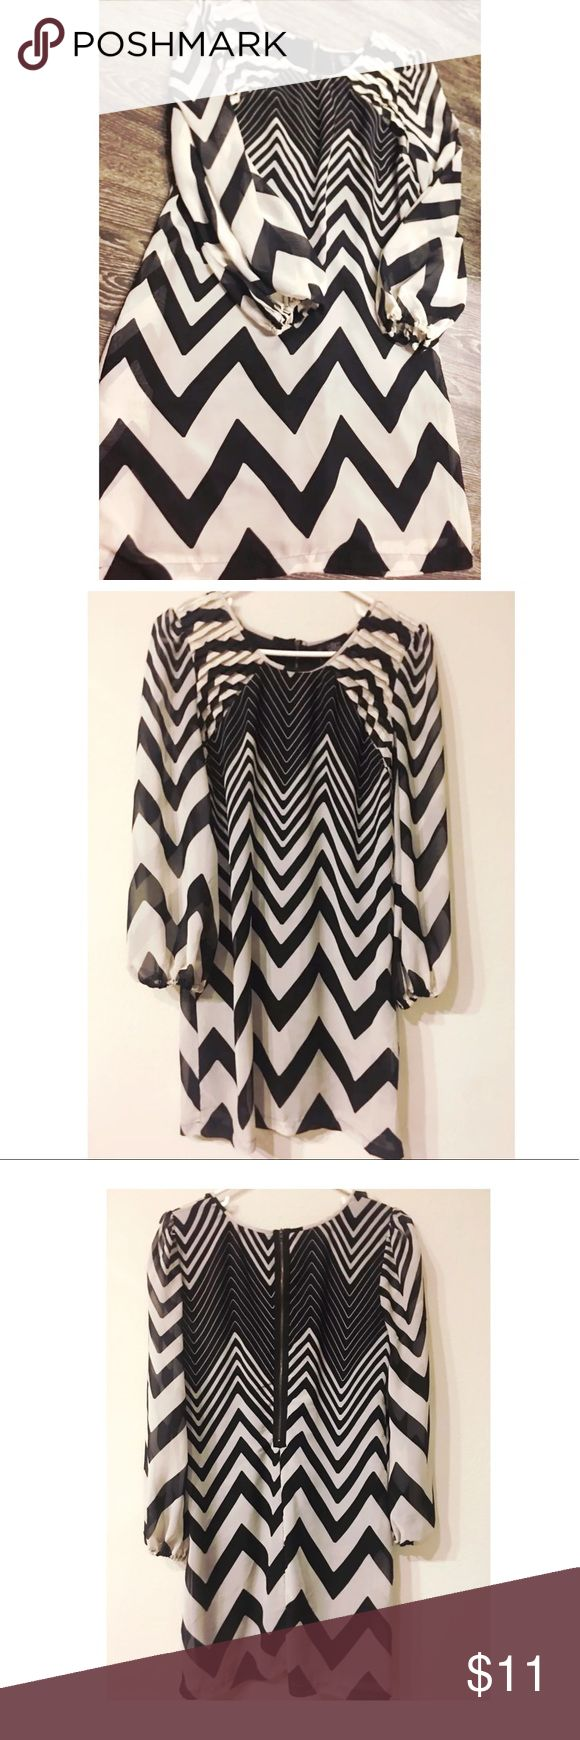 Chevron Print Dress Size Large ◾️▫️Beautiful Chevron Print Dress (black and White)  ✔️Excellent Condition Just like new  🔘Size Large with full sleeves  📏Measurements: bust 19 inches  Length 35 inches   📦📫 Bundles and Offers are accepted Fire Los Angeles Dresses Midi